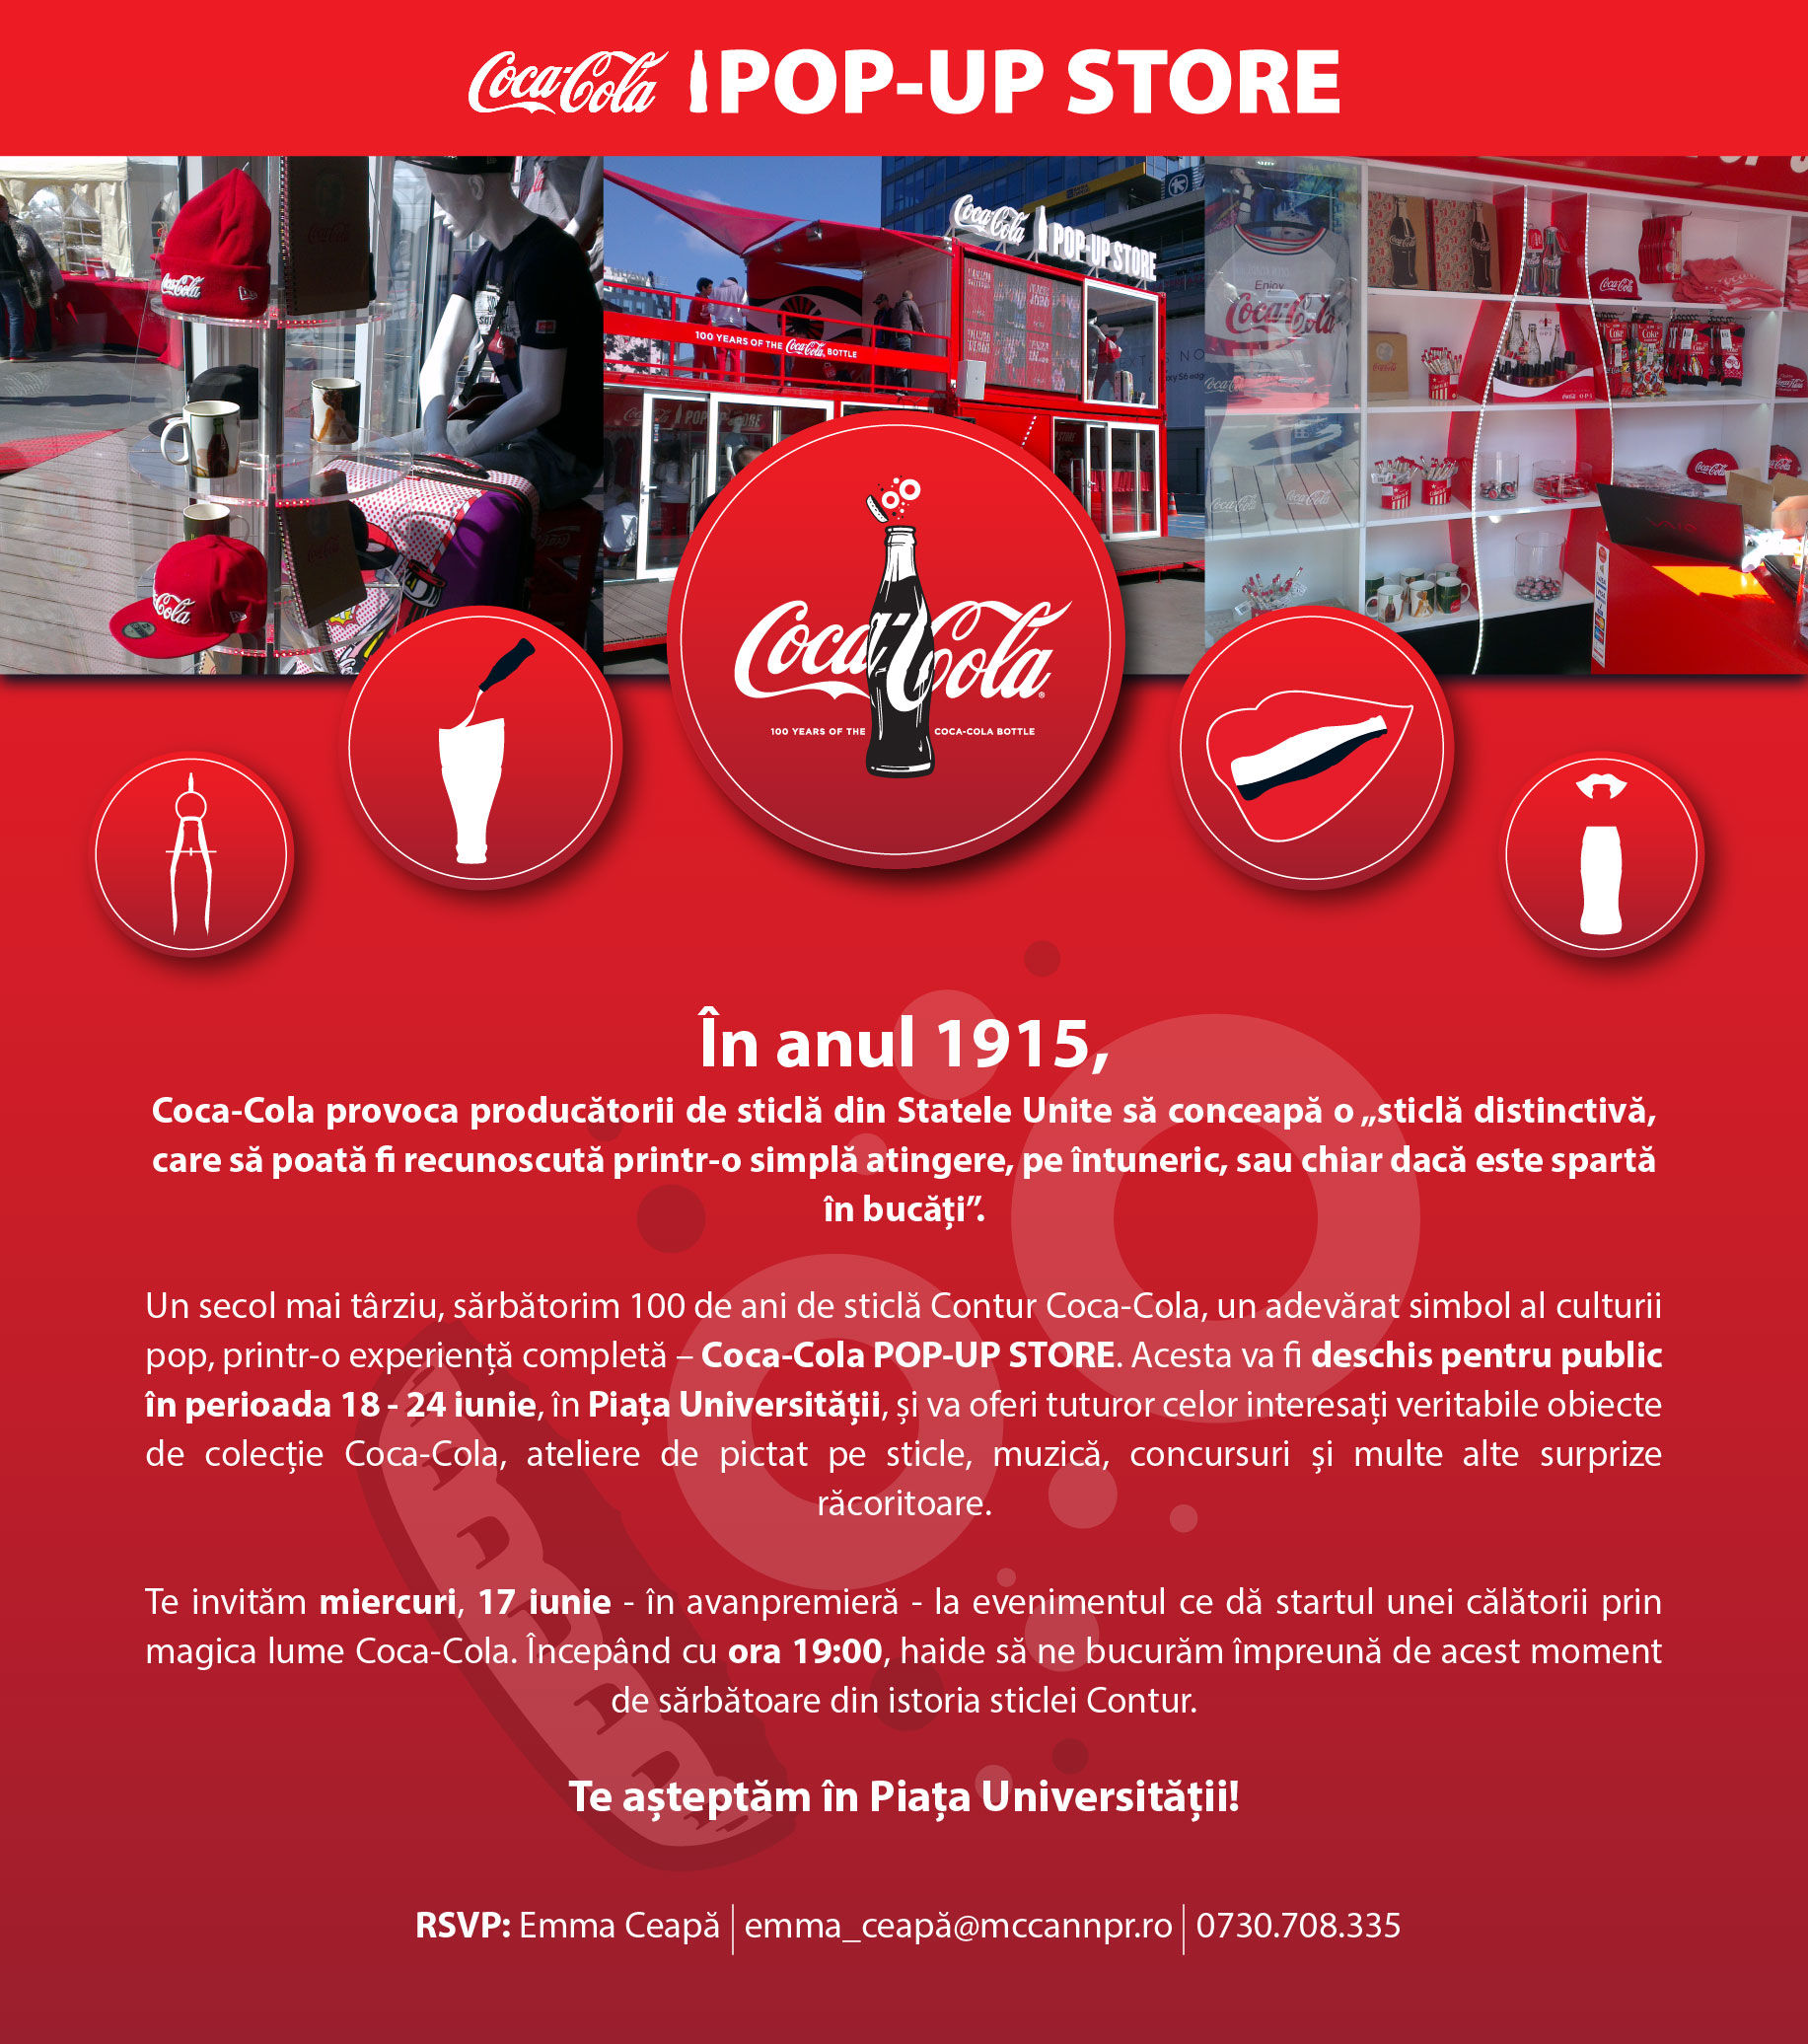 Coca-Cola POP-UP STORE